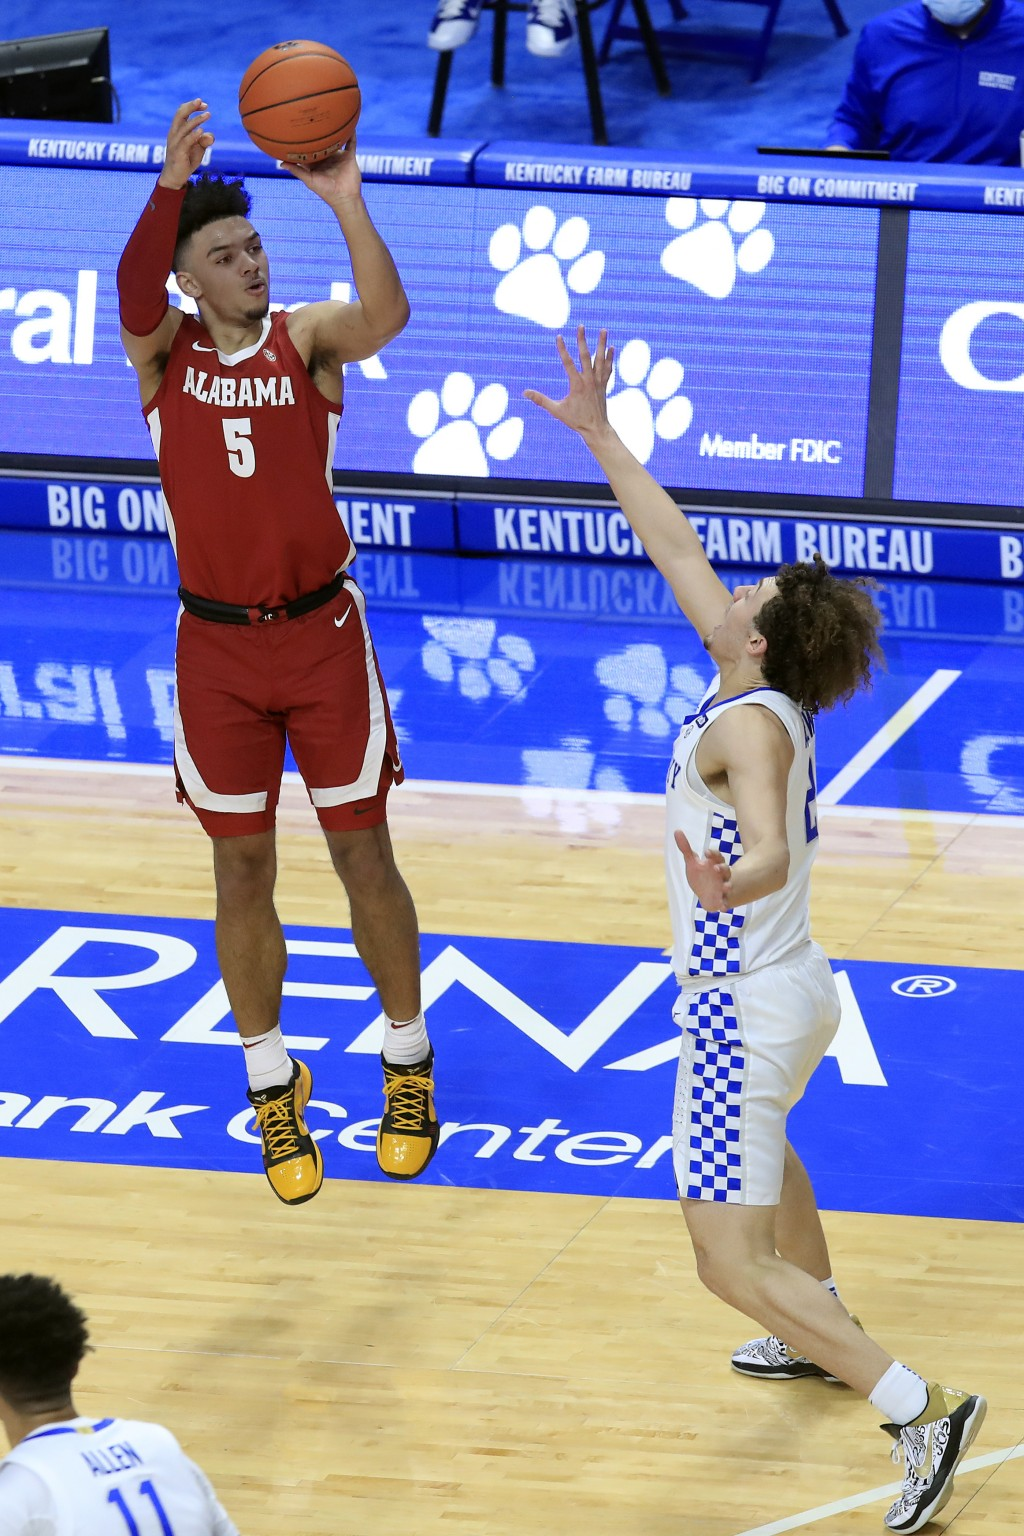 Alabama's Jaden Shackelford (5) shoots a 3-pointer over Kentucky's Devin Askew during the first half of an NCAA college basketball game in Lexington, ...